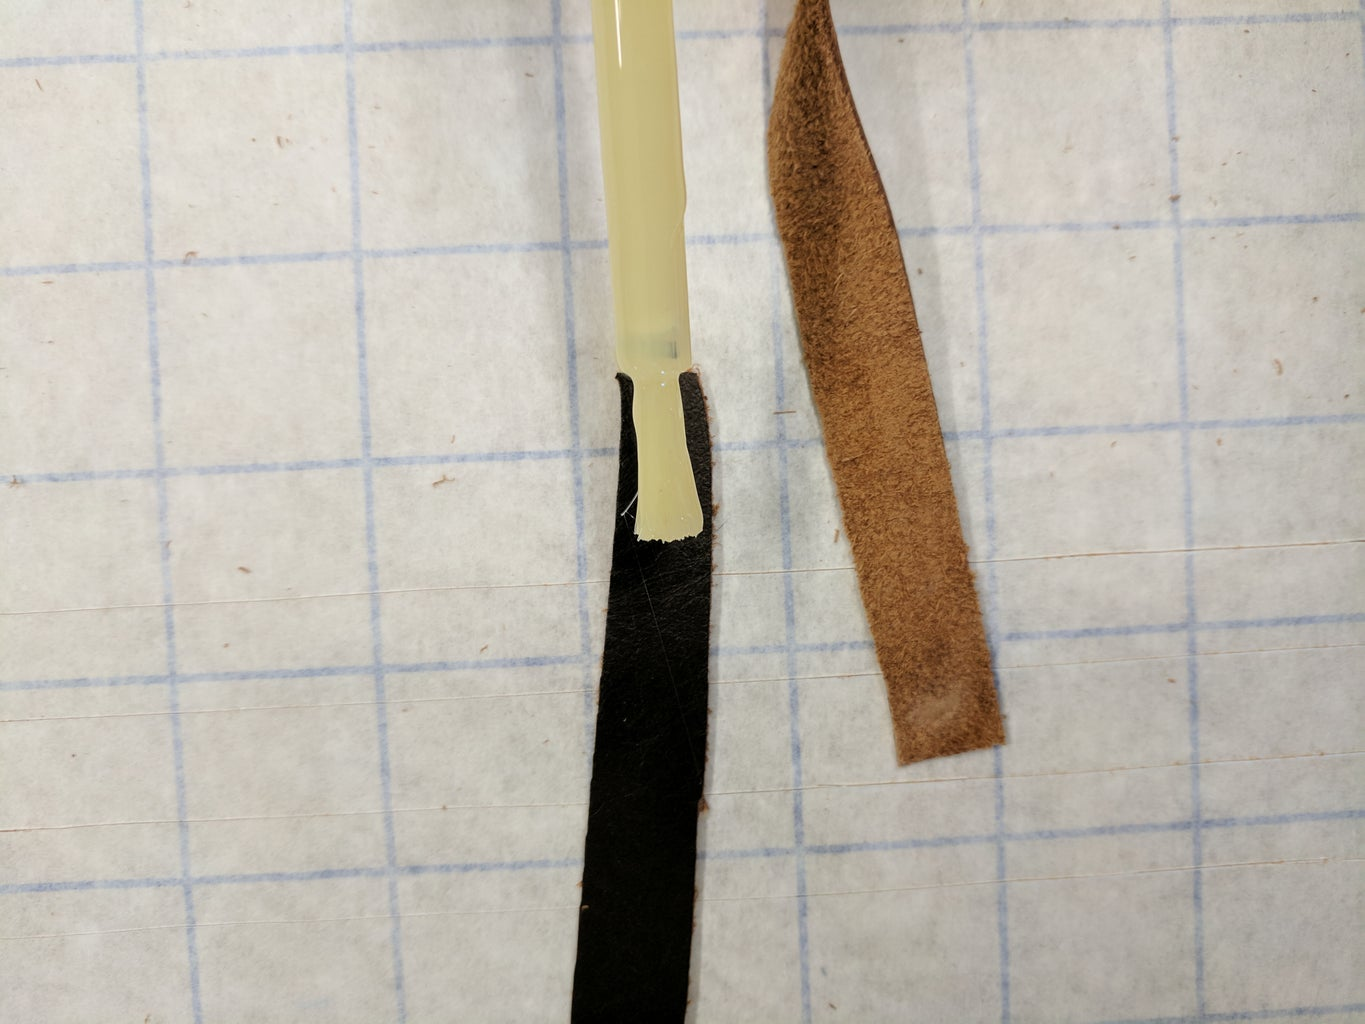 Add the Leather Grips to the Ringblades